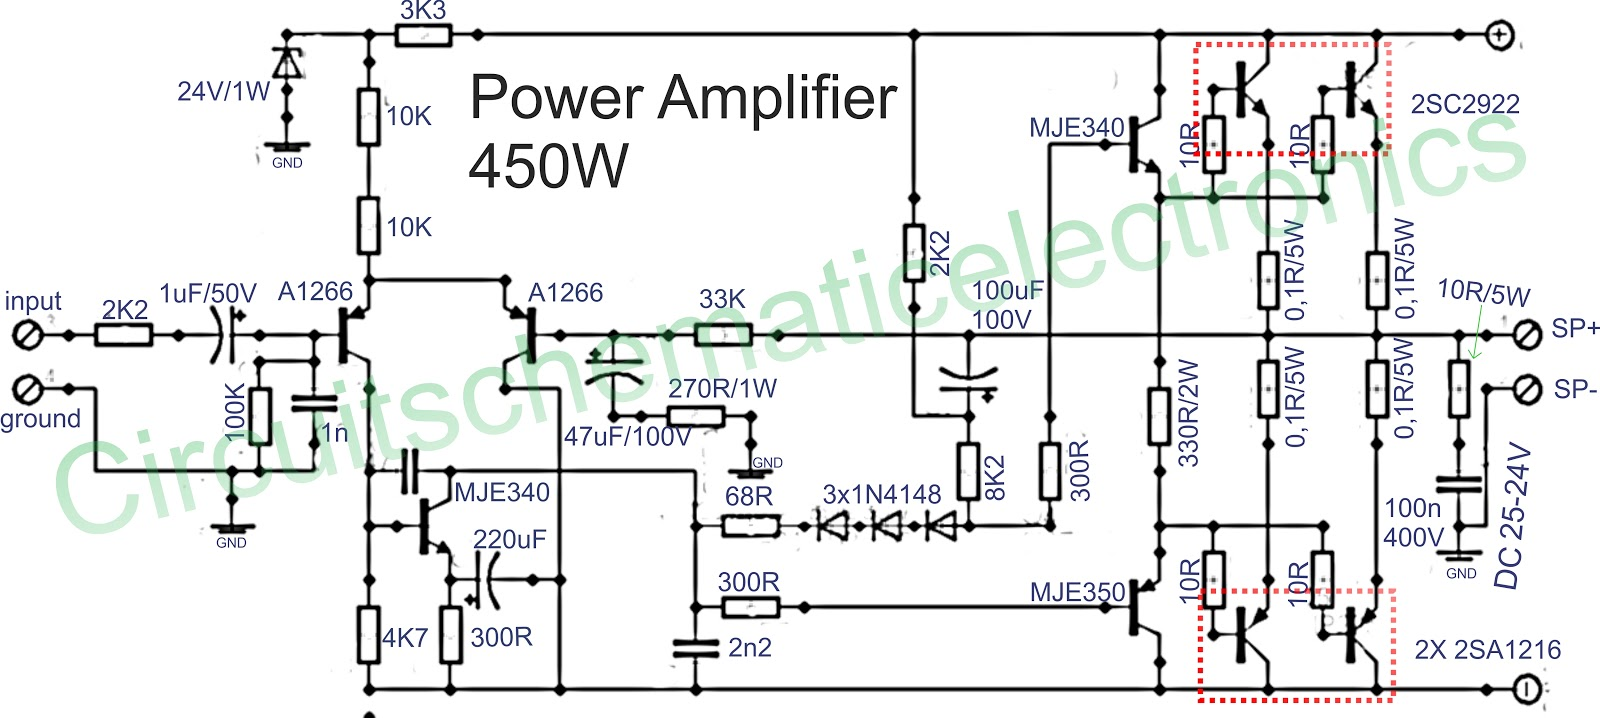 hight resolution of to the driver circuit using pnp transistor mje350 and mje350 for the final amplifier